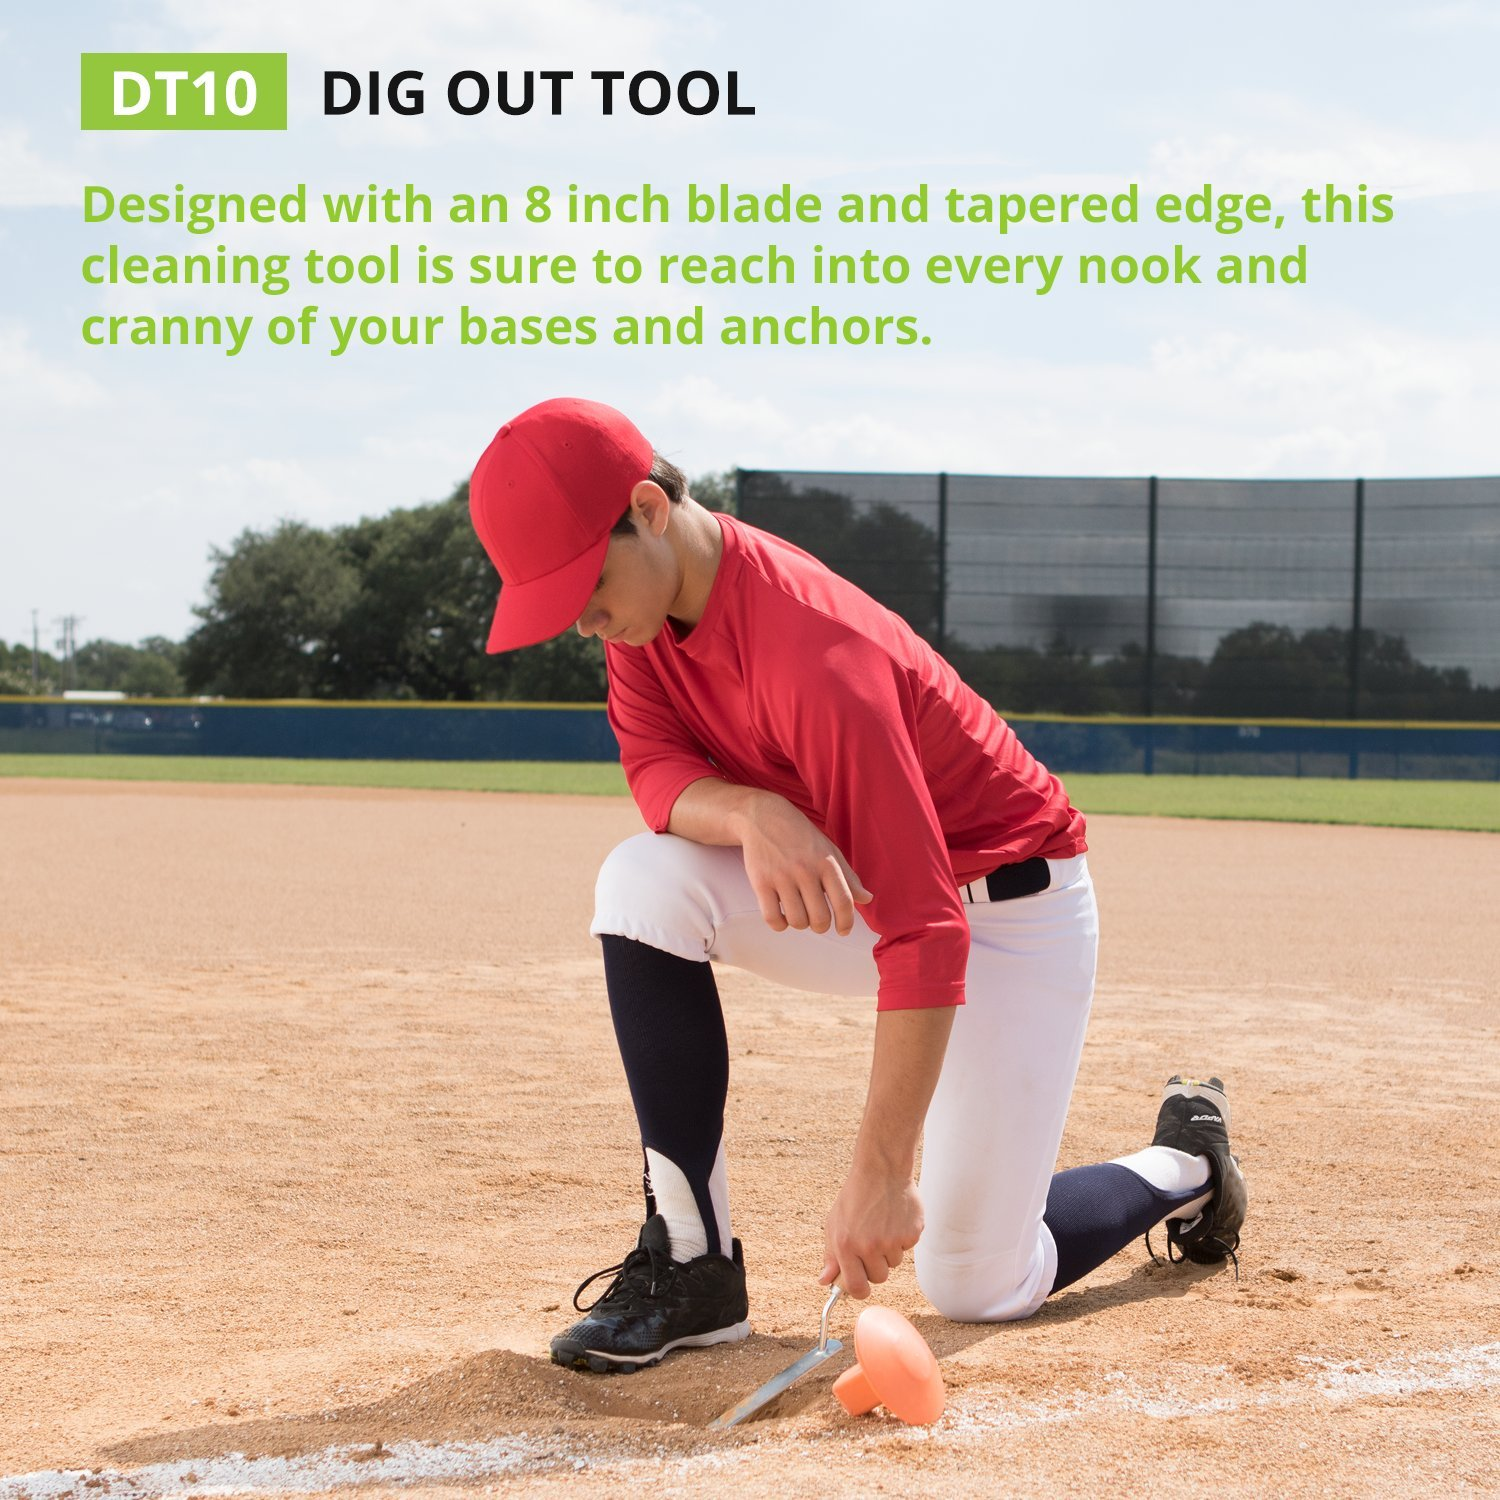 Amazon.com : Champion Sports Baseball Dig Out Tool : Baseball ... on looking out, drive out, digging out, powers out, your out,